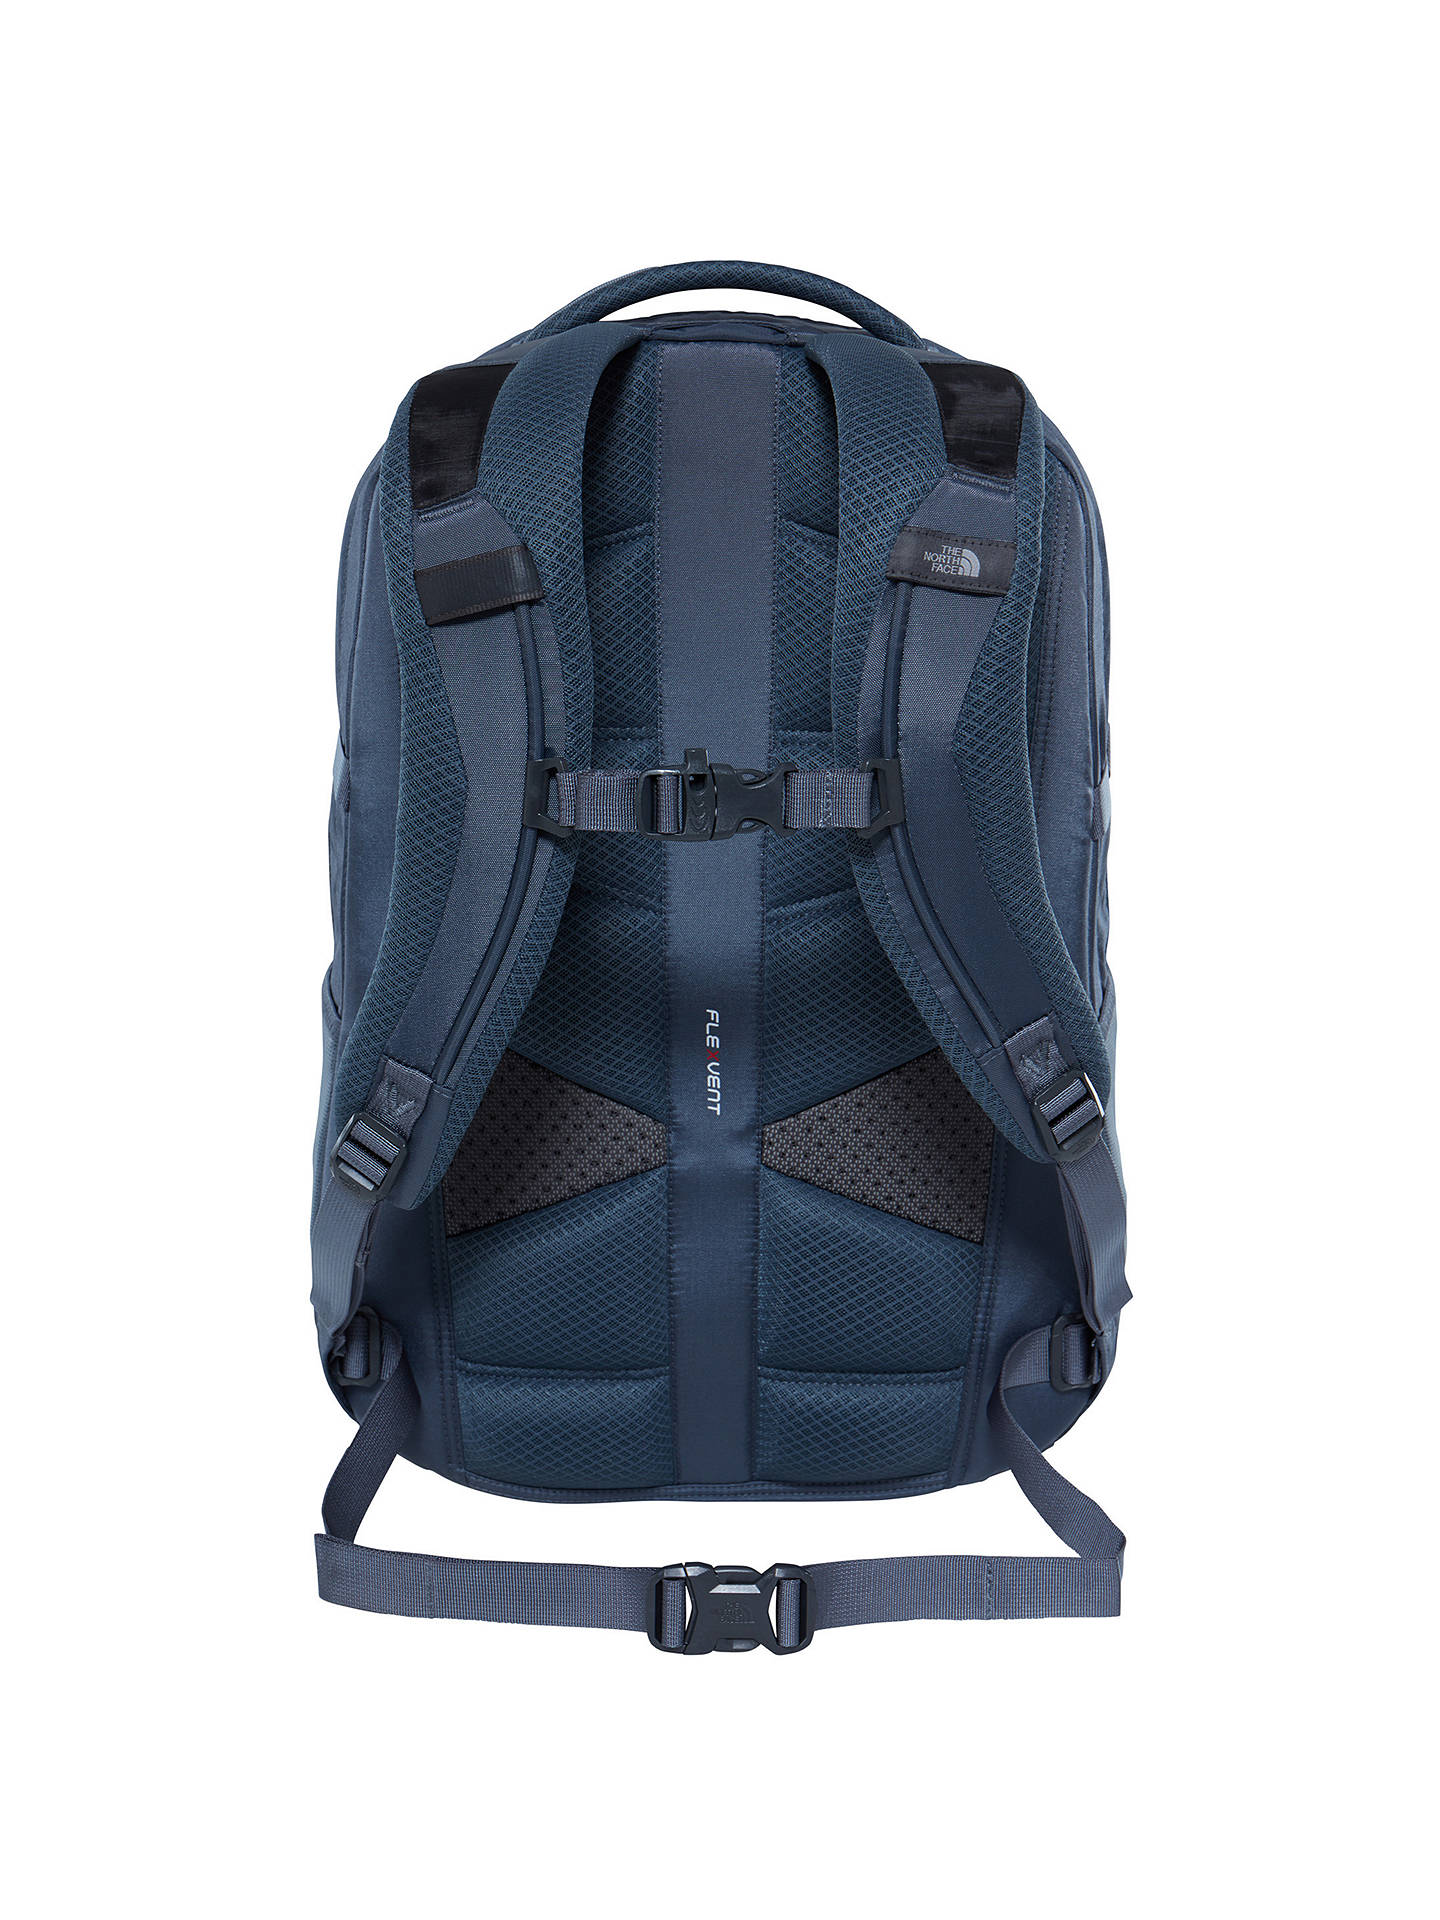 9654a4ec6 The North Face Borealis Backpack, Yellow